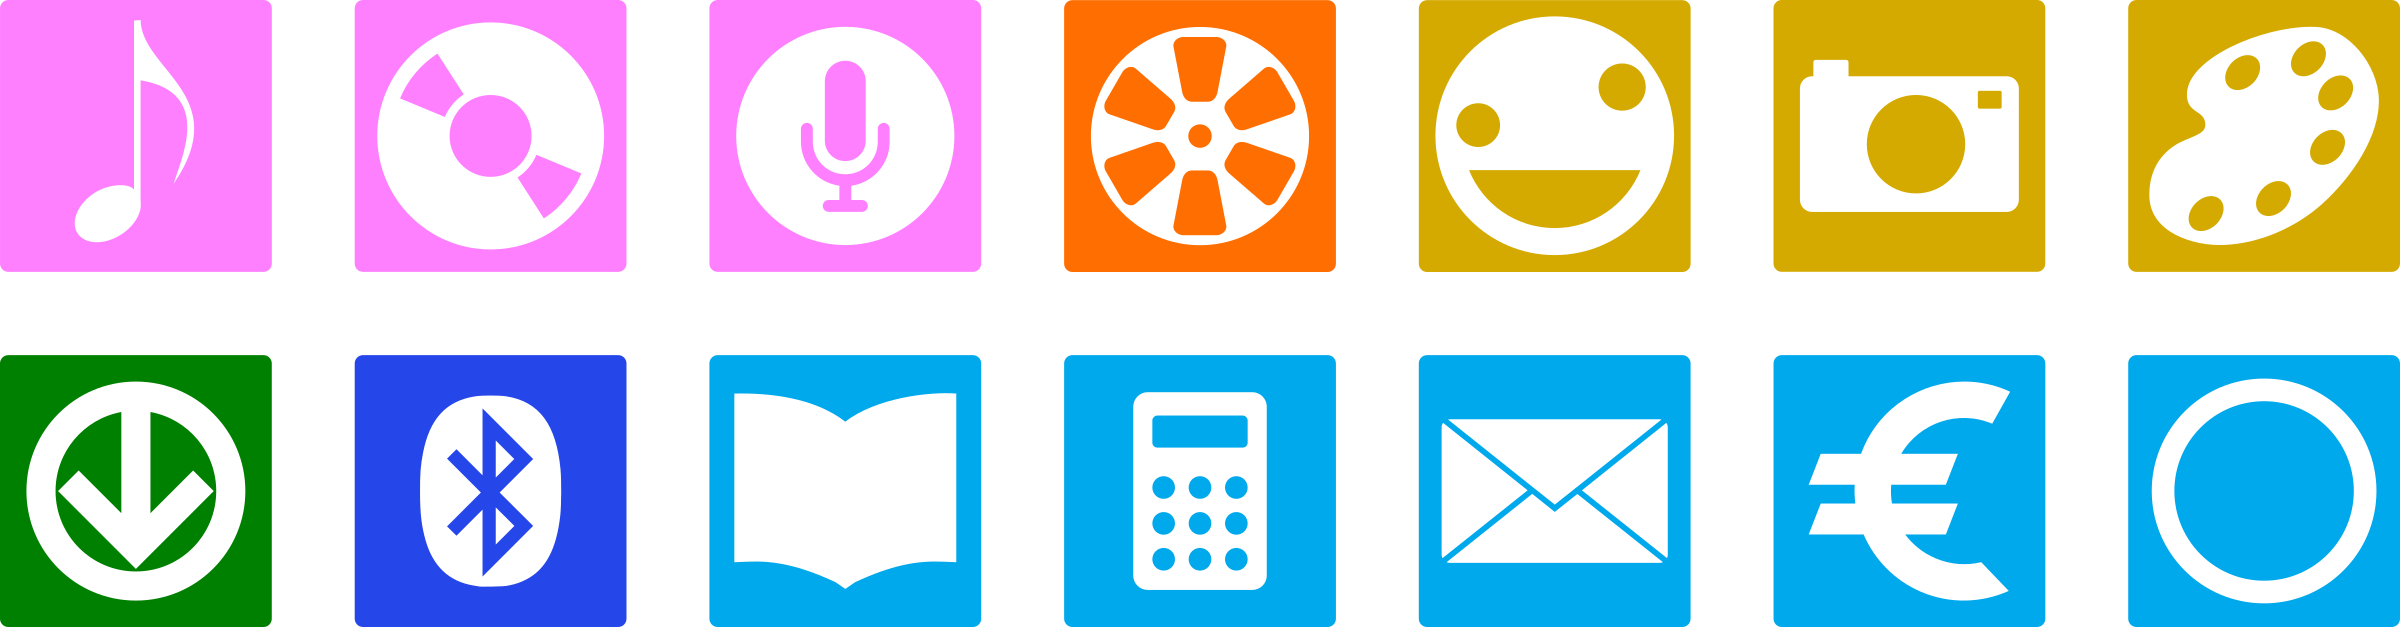 Icons for Android by rones